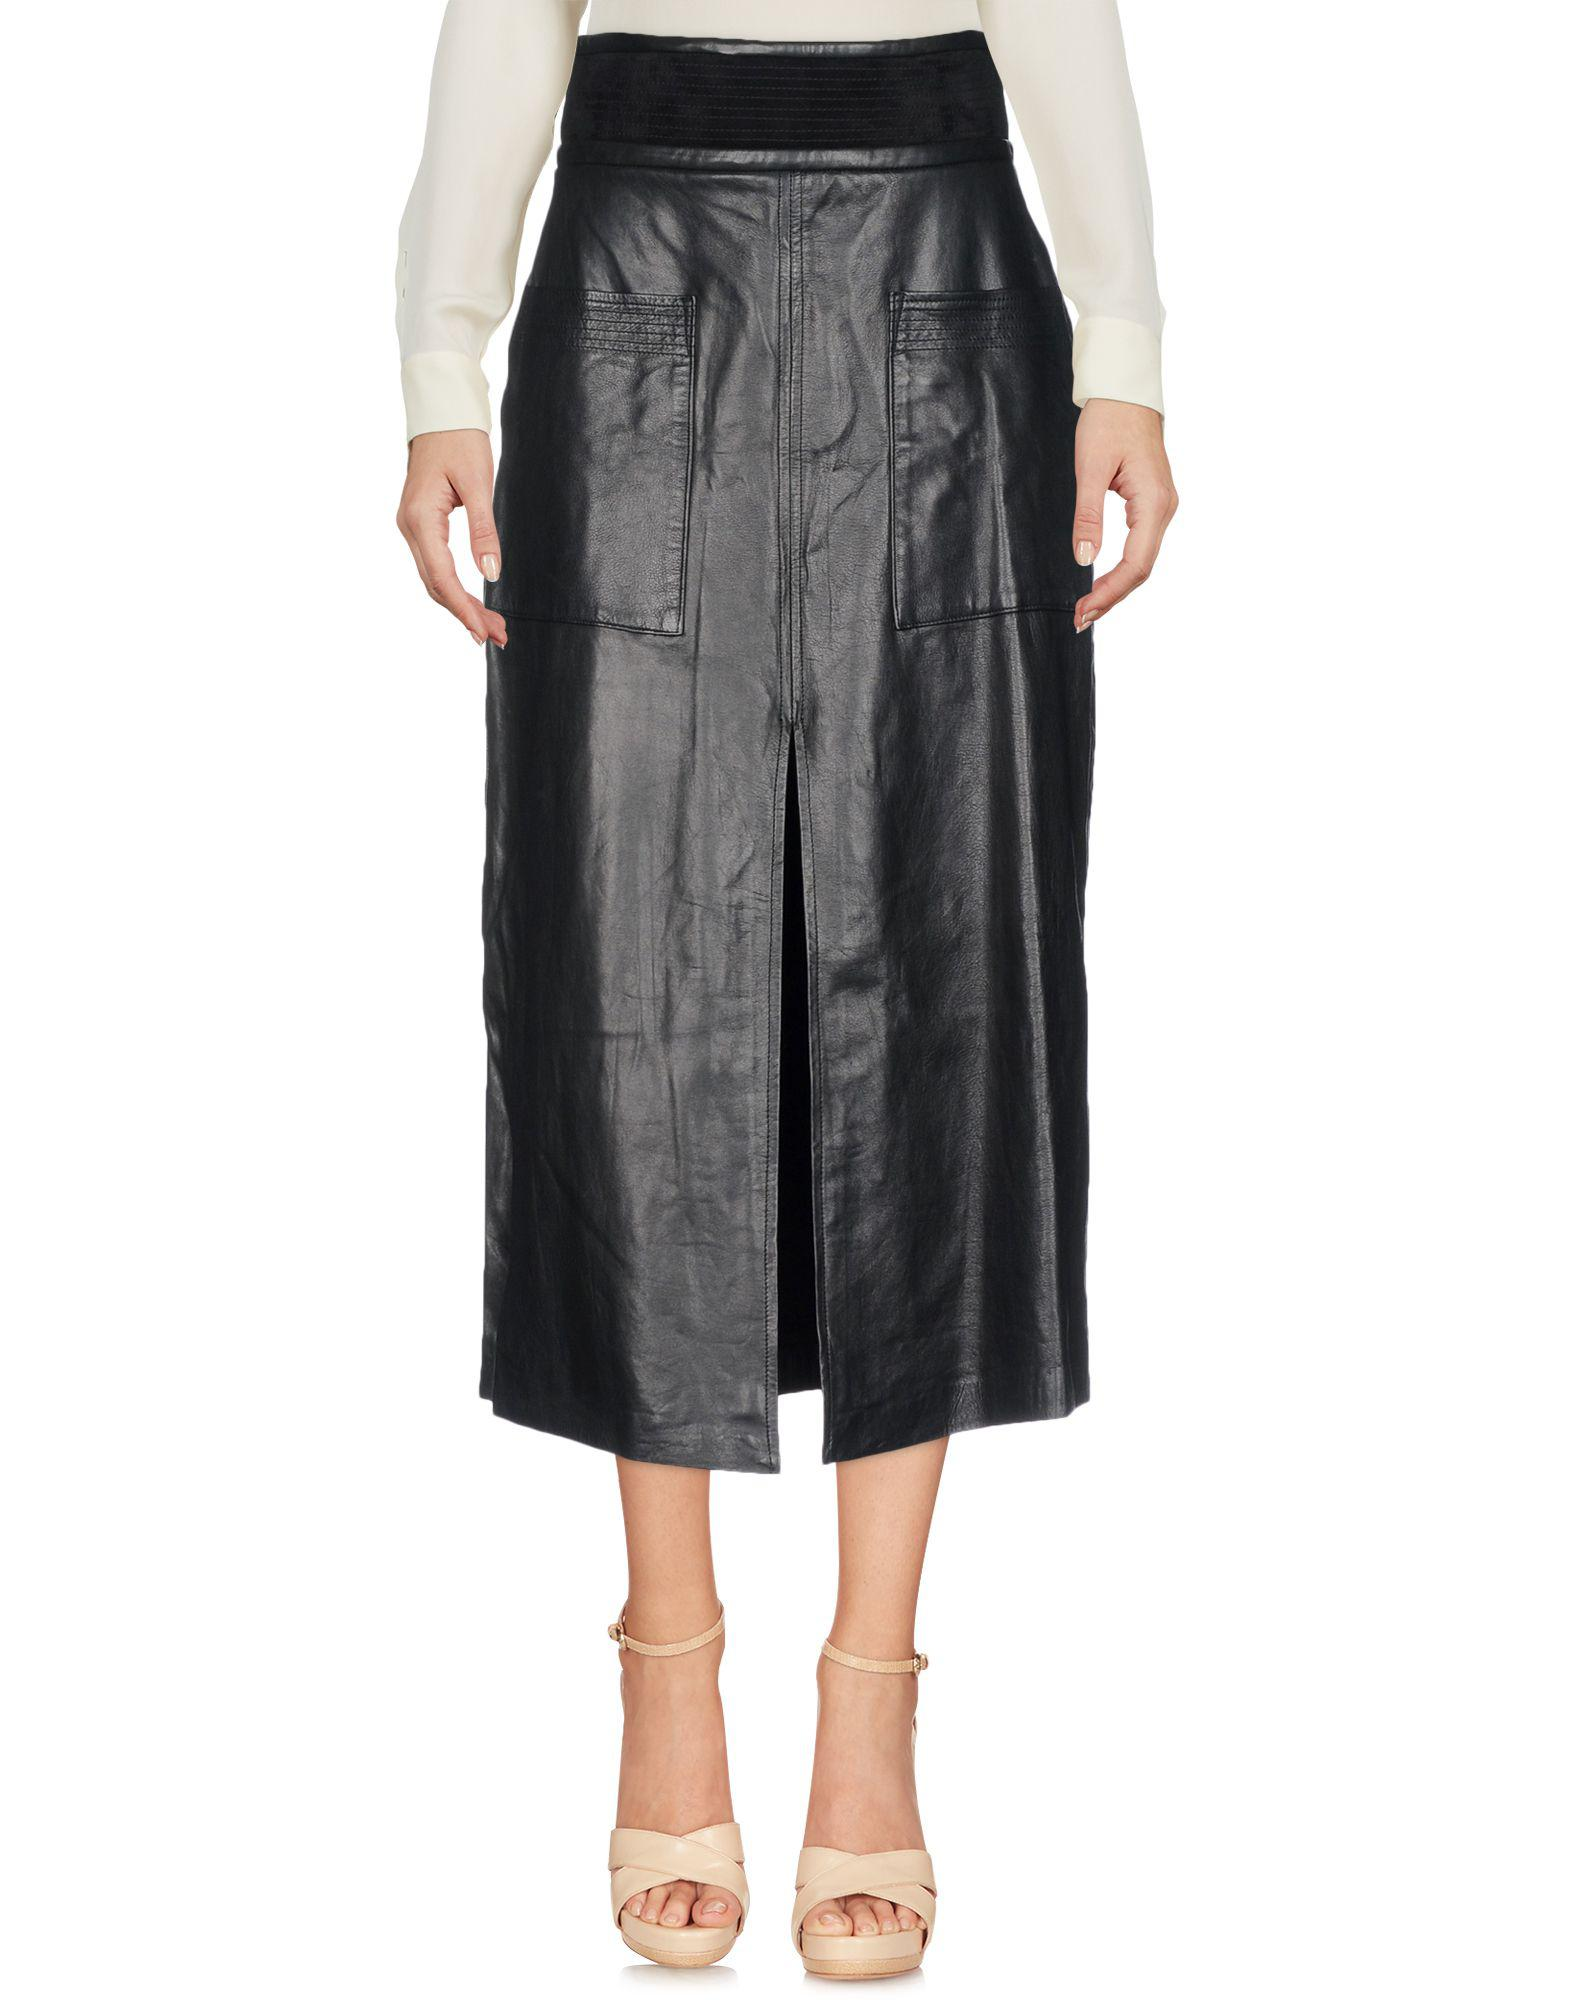 SKIRTS - 3/4 length skirts Ortys Buy Cheap 2018 Pre Order For Sale Fake Cheap Price jX0hucgKj